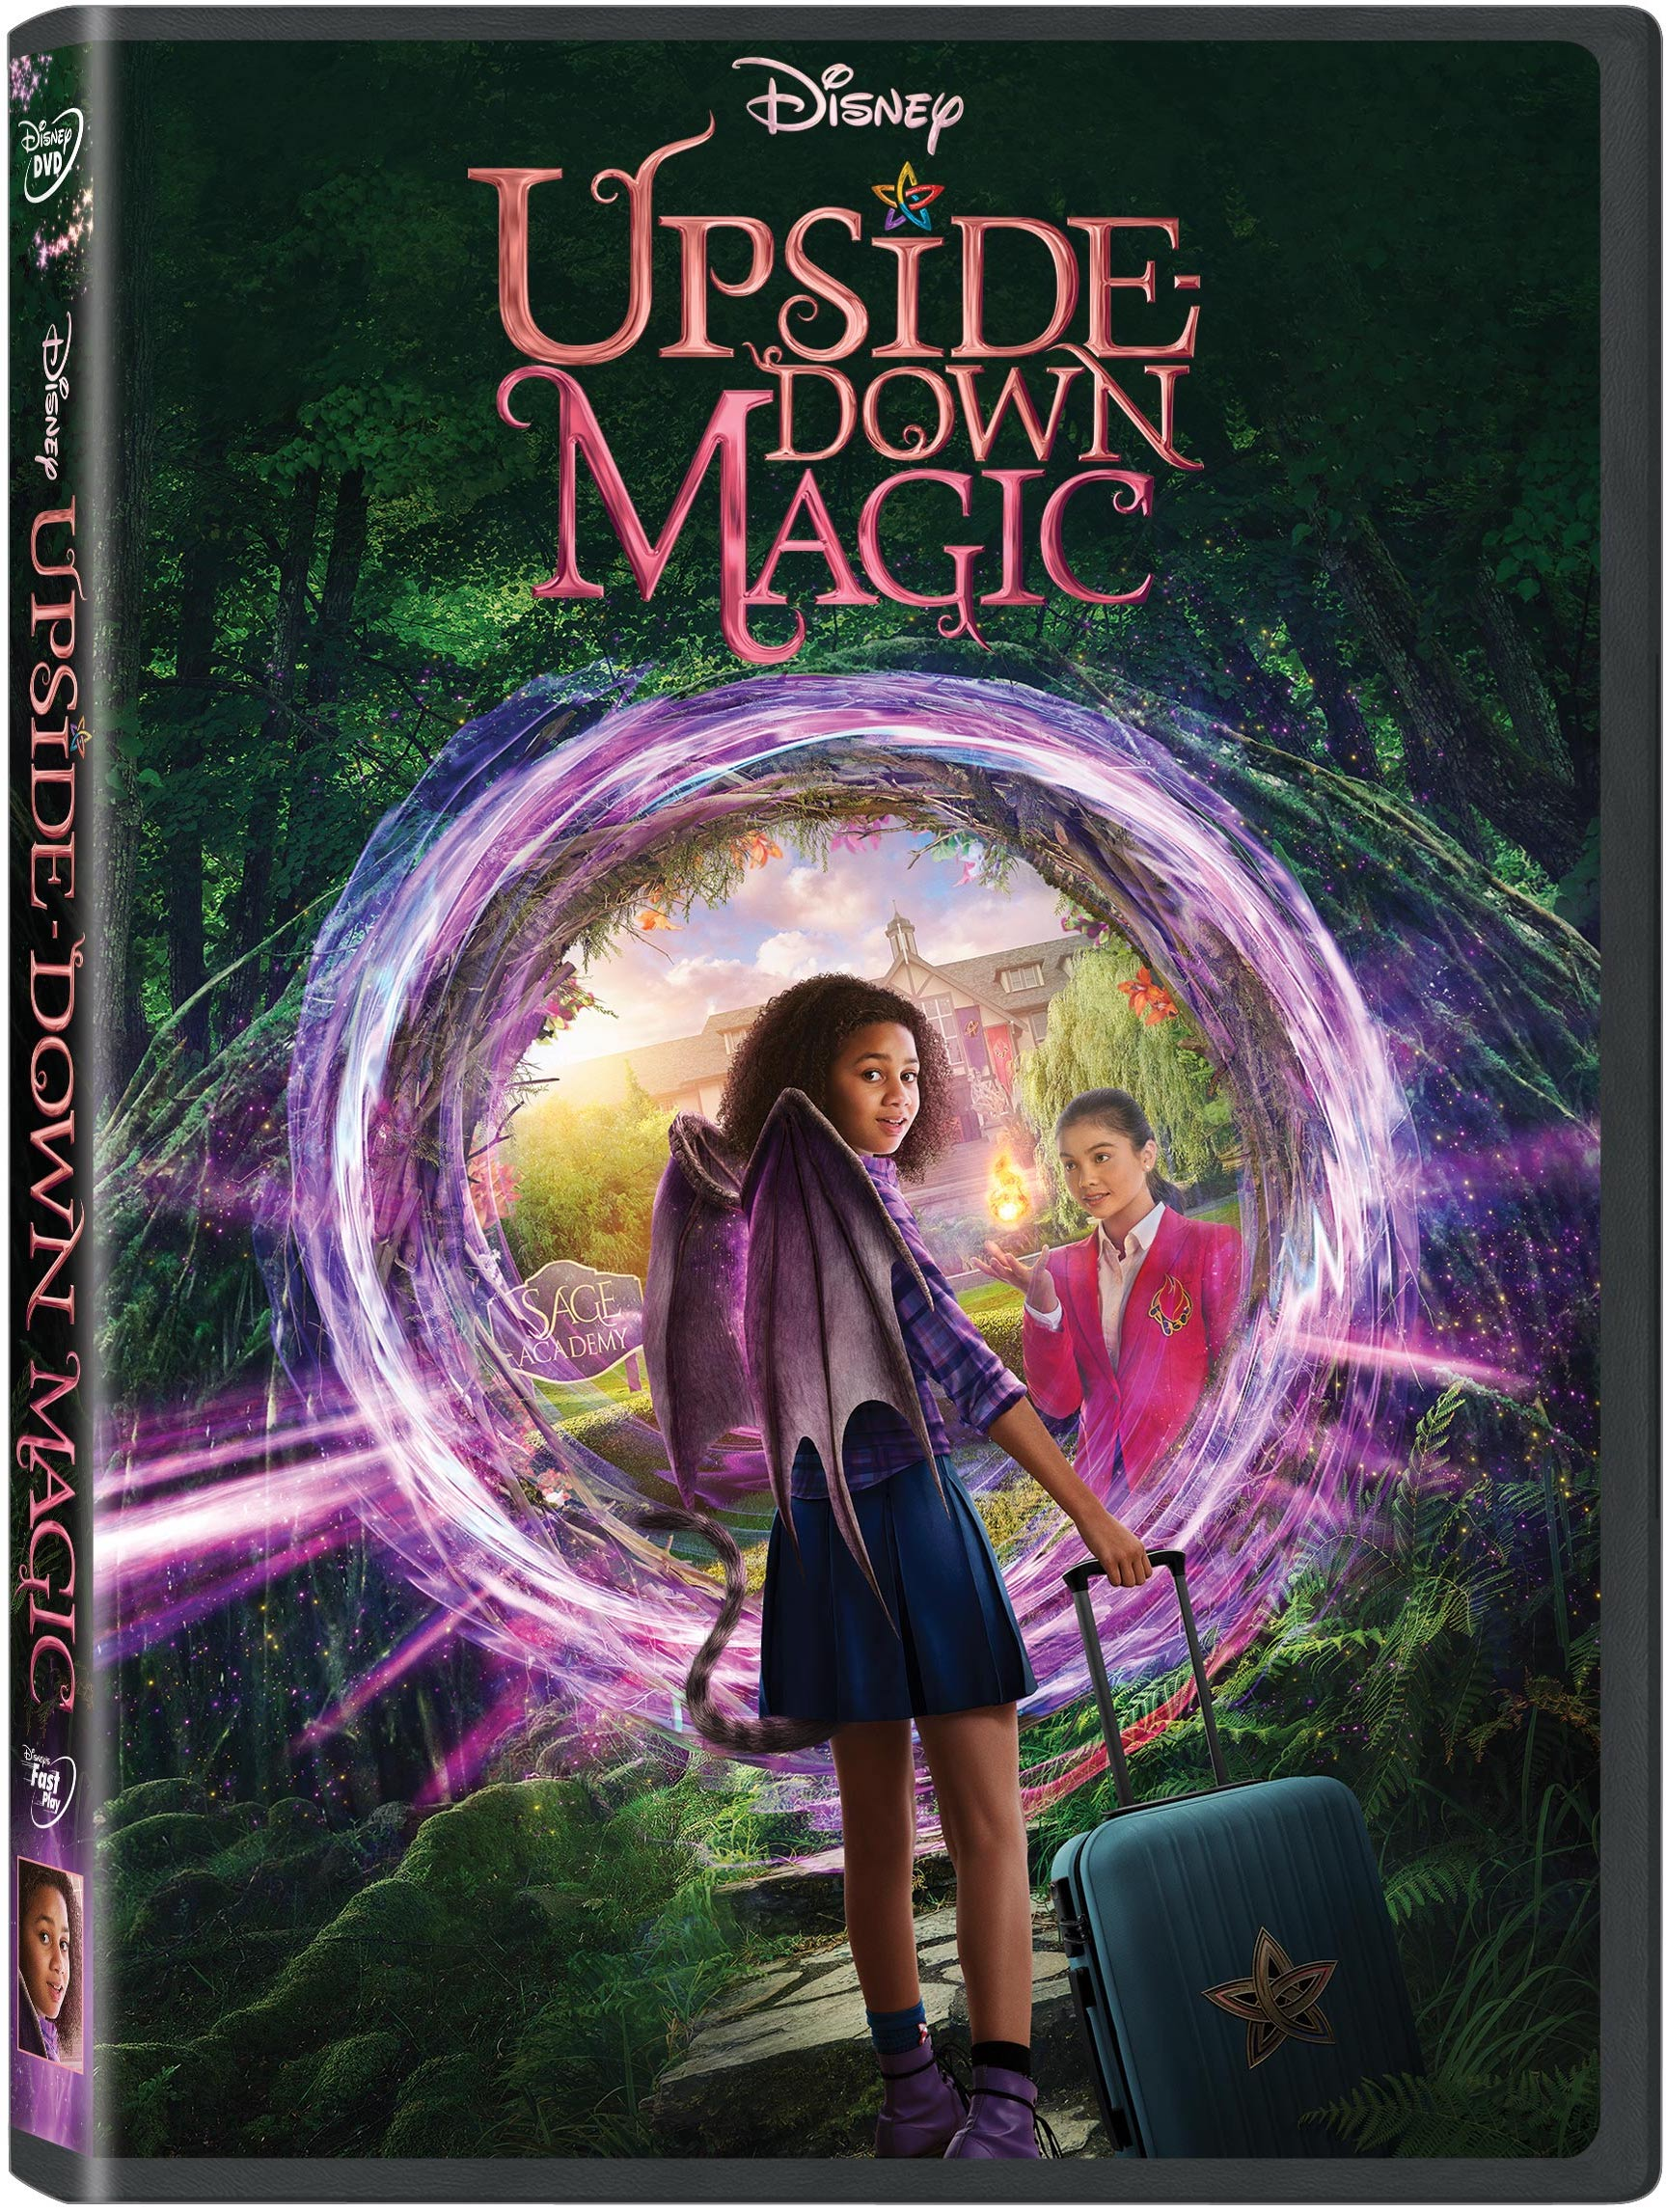 Upside Down Magic Poster. Can Nory prove that she can do magic the right side up way? An enchanting twist on a classic story of friendship and self-discovery, Disney's Upside-Down Magic is now available to own on Digital and DVD.